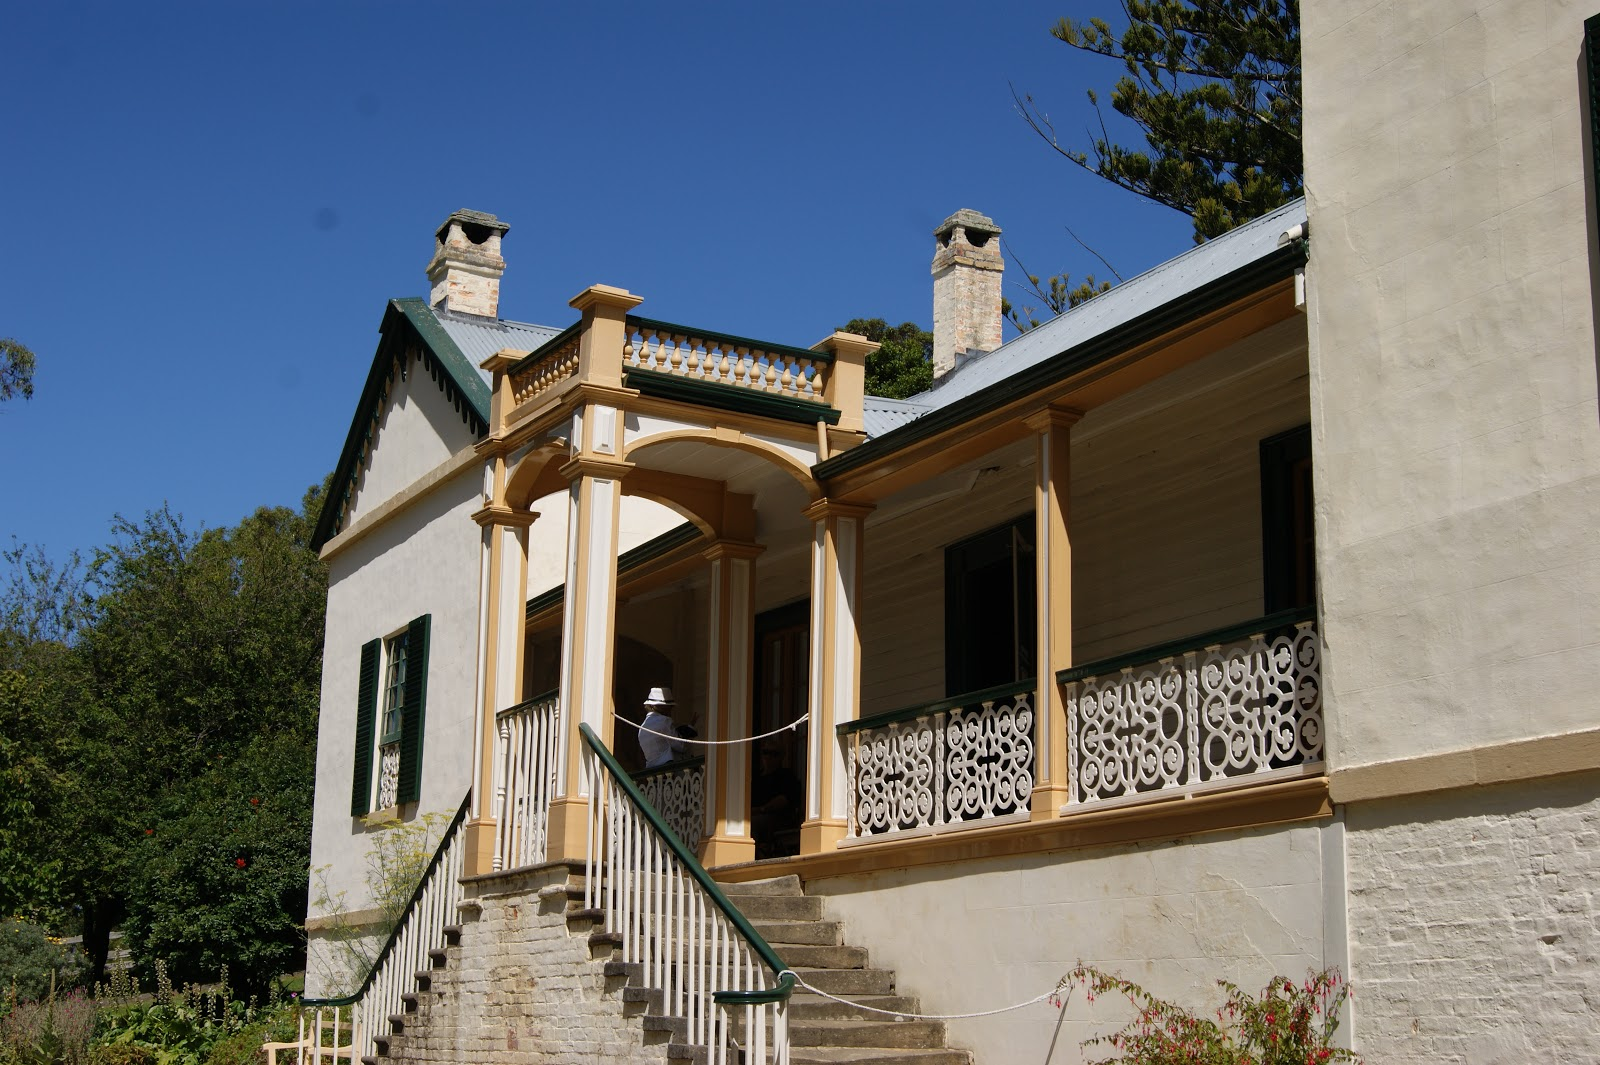 On the convict trail the commandants house port arthur commandant charles booth moved into the four room cottage in 1833 it was surrounded by a verandah closed in by green venetian blinds malvernweather Choice Image